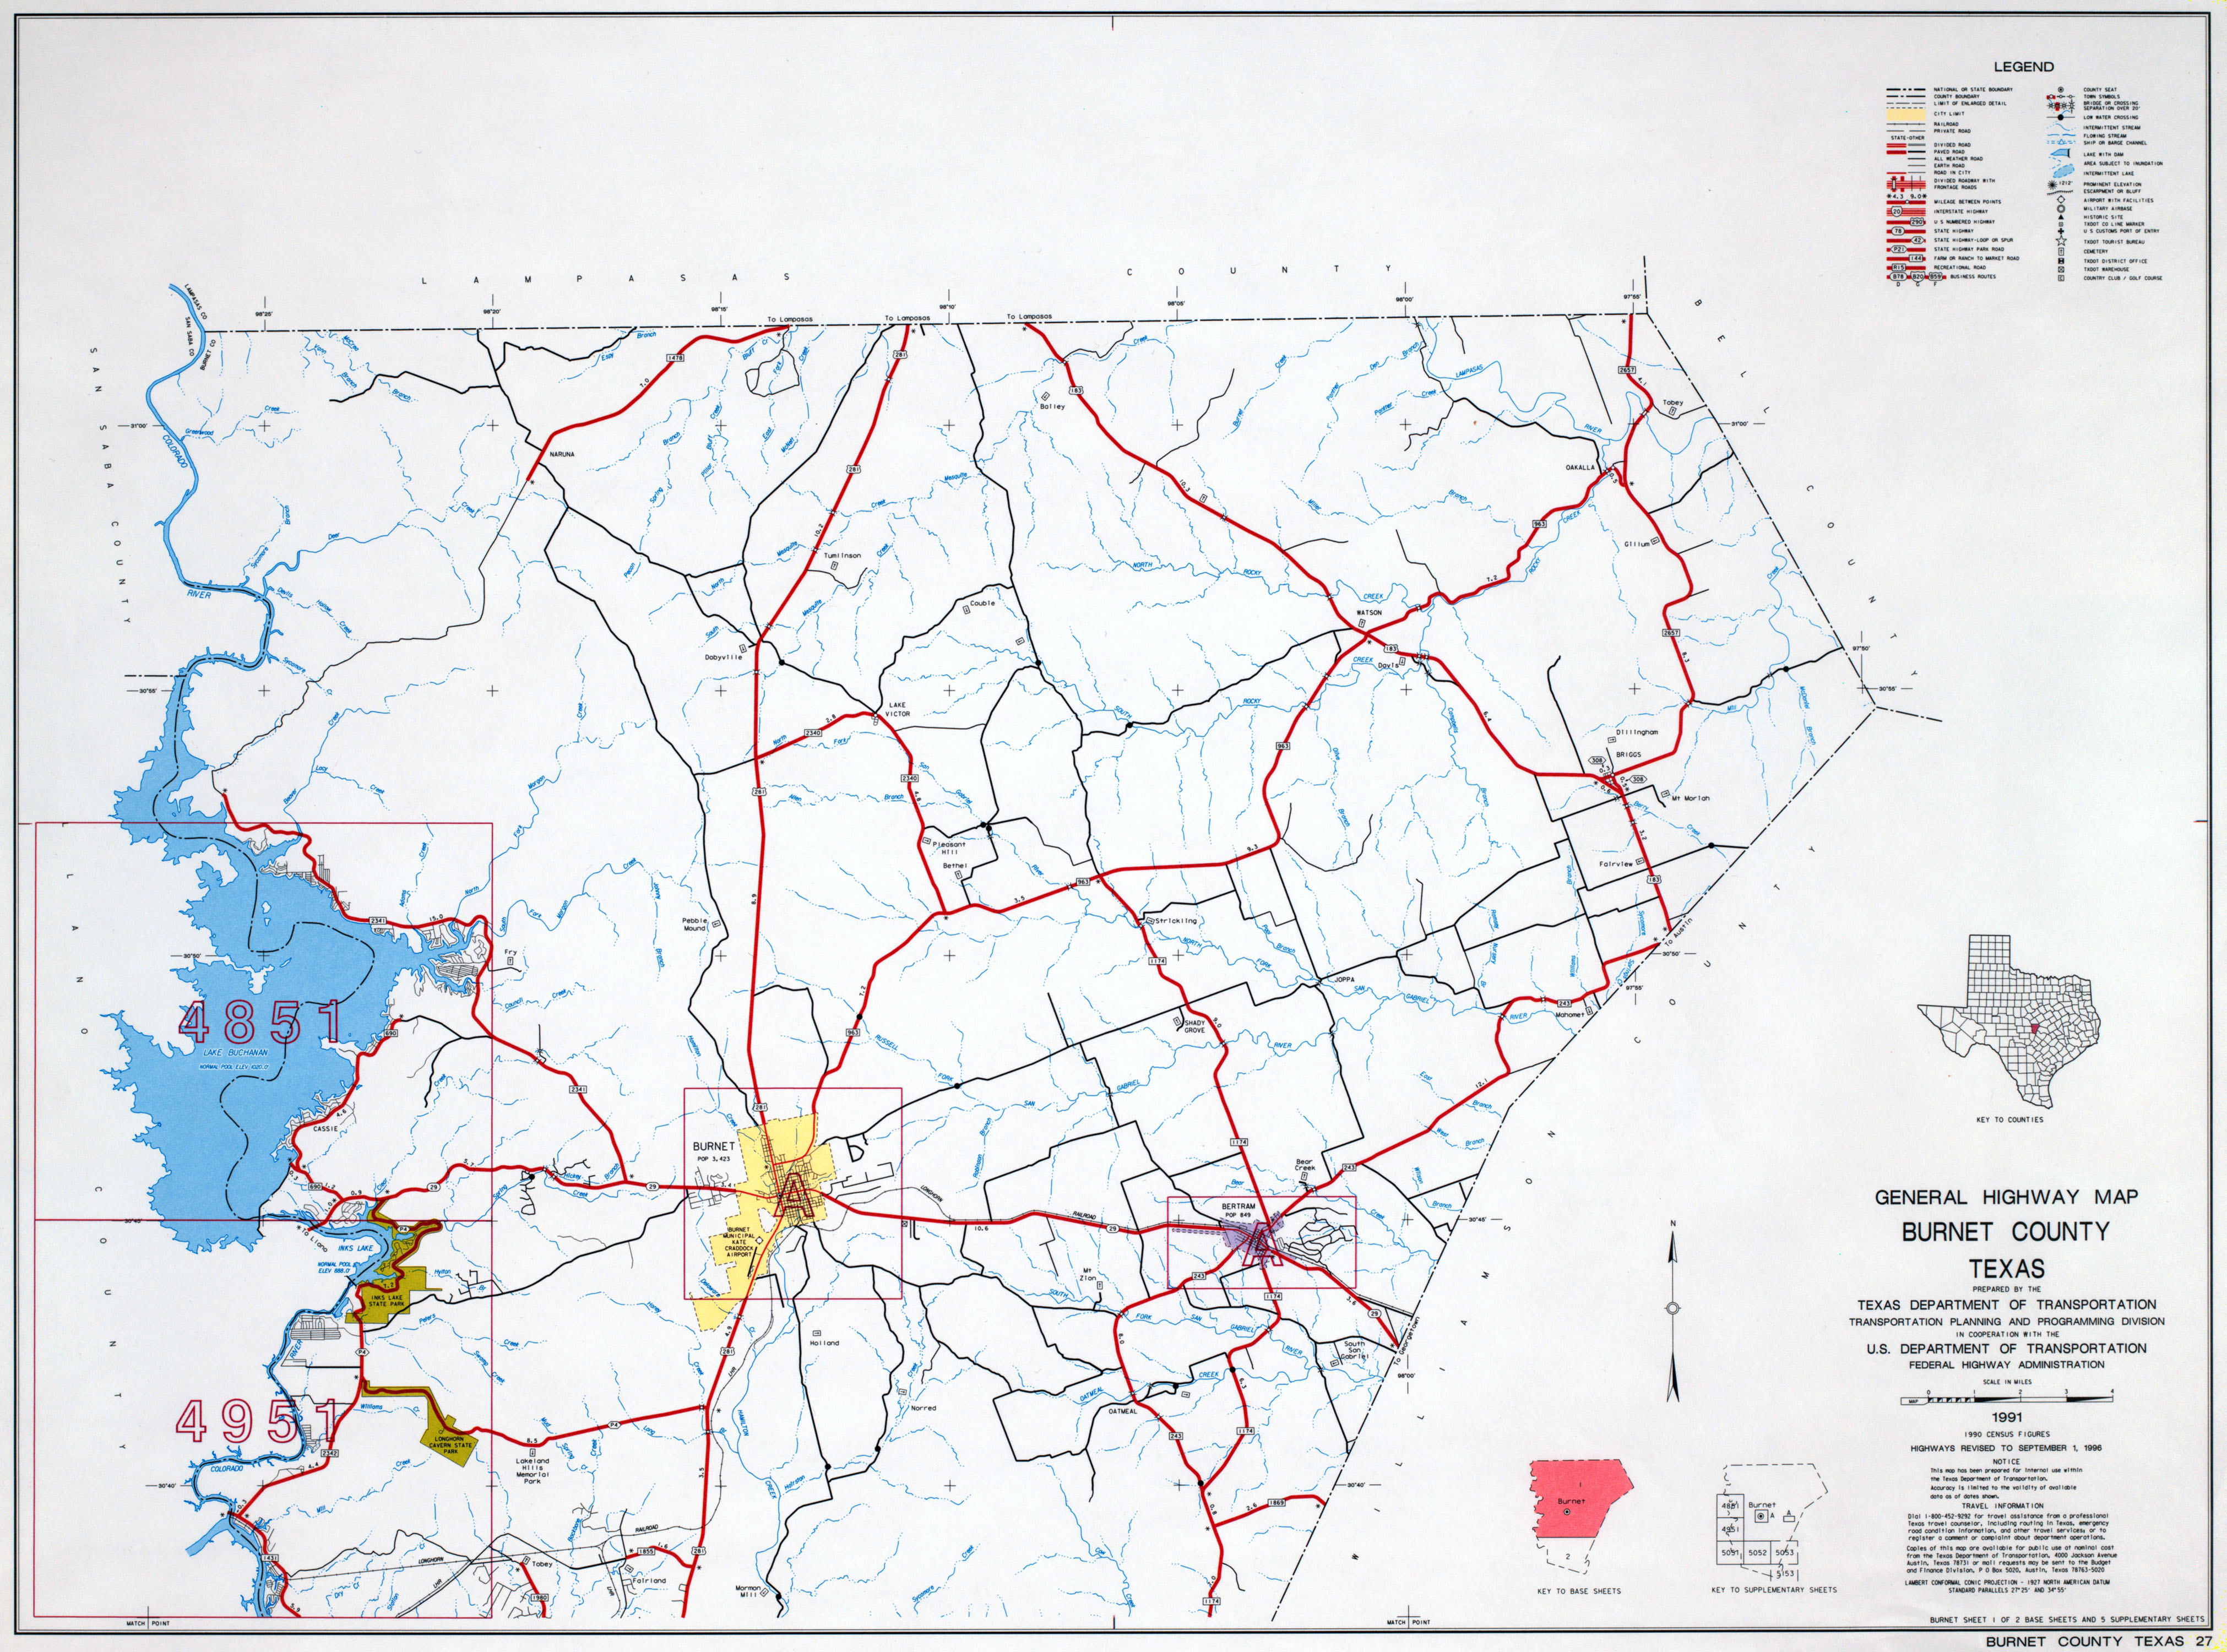 Texas County Highway Maps Browse PerryCastañeda Map Collection - Maps of texas counties